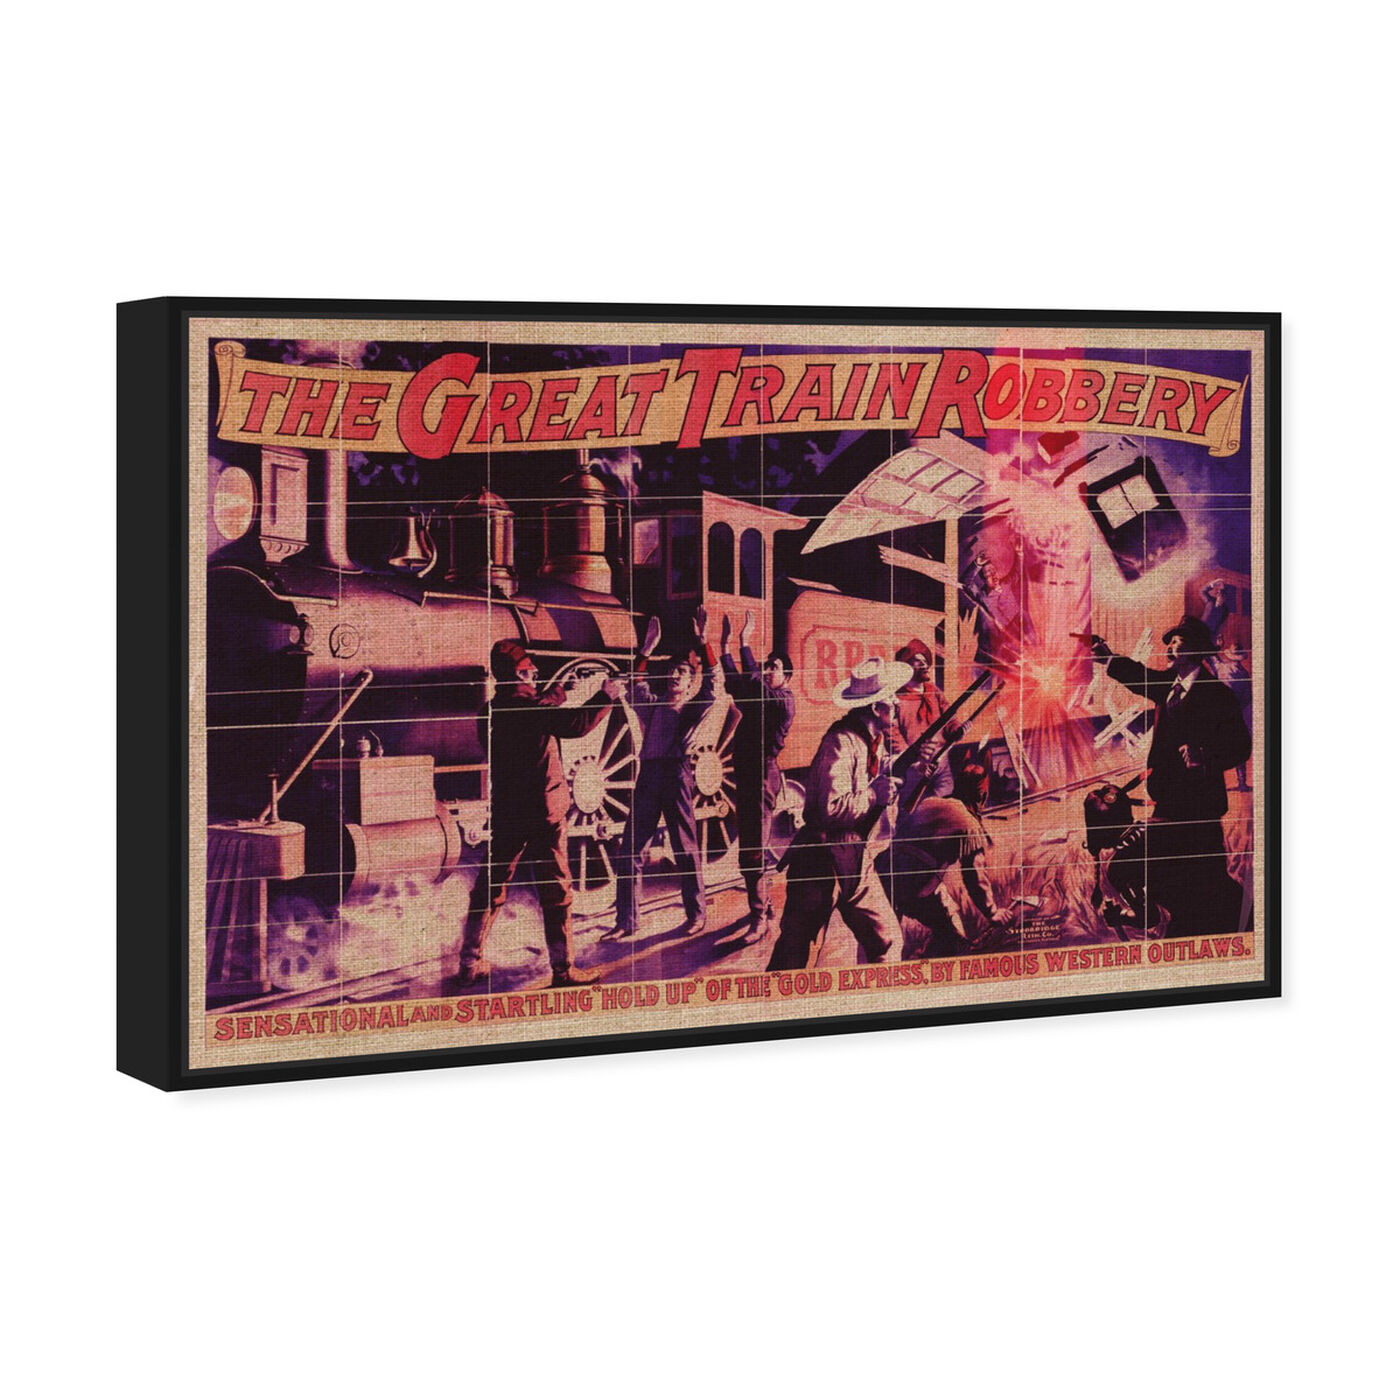 Angled view of Great Train Robbery featuring advertising and posters art.